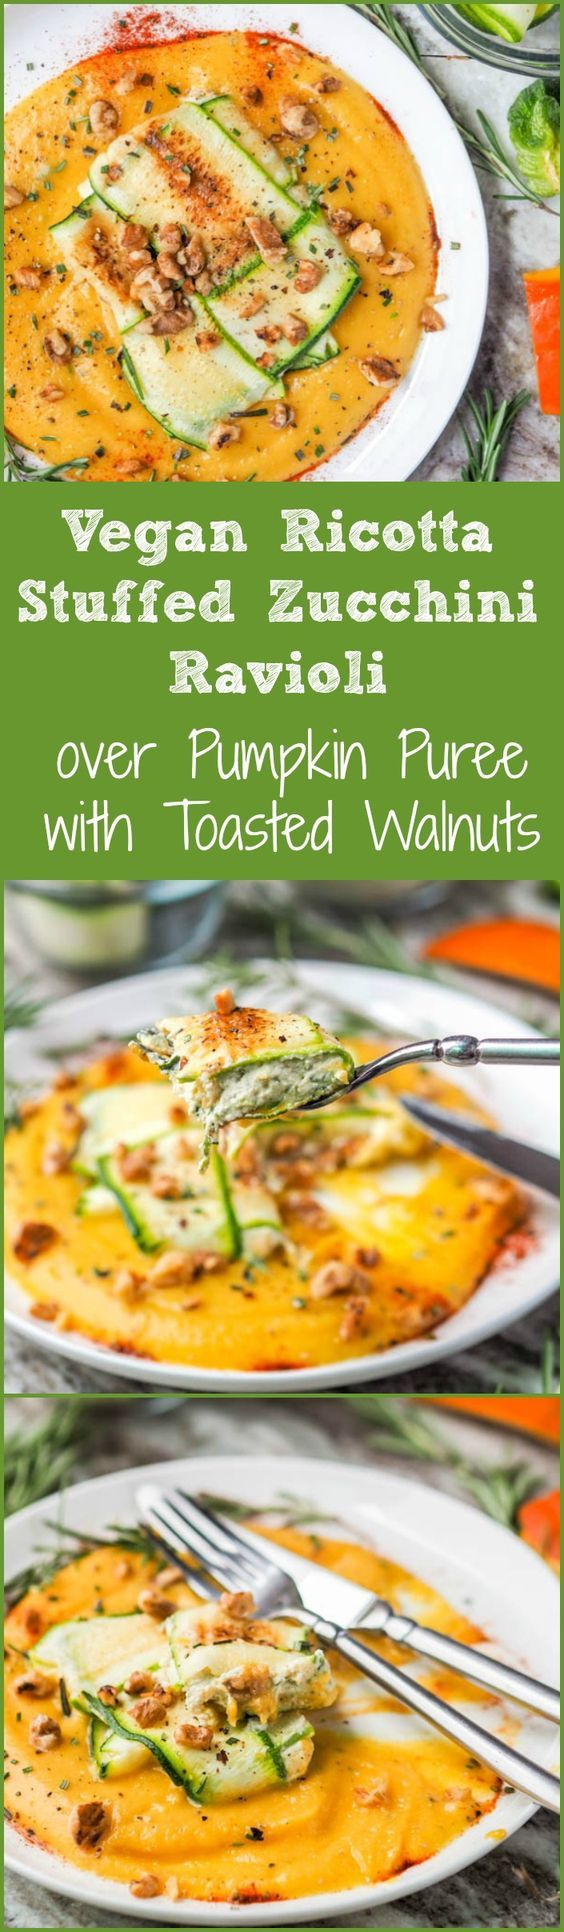 Your favorite fall pumpkin rosemary flavors topped with a vegan ricotta stuffed zucchini ravioli and sprinkled with toasted walnuts. Dinner doesn't get better than this. Who knew it'd be so easy to make zucchini ravioli paleo, low carb and gluten free? #vegan #paleo #zucchini #ravioli #dinner #healthy via @acoupletravelers